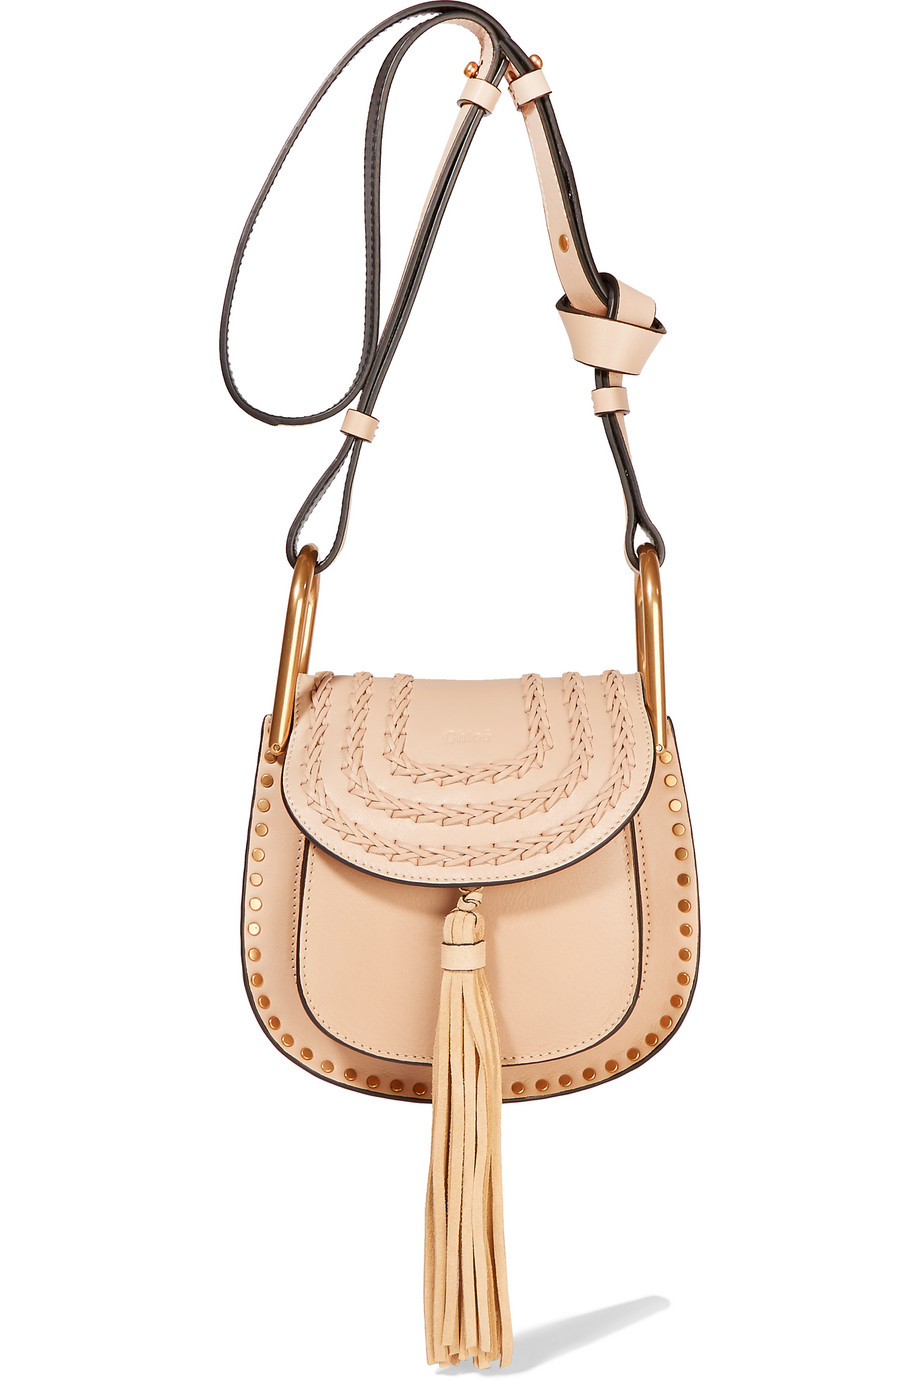 Chloé Hudson Mini Whipstitched Leather Shoulder Bag, Sand, Women's, Size: One Size